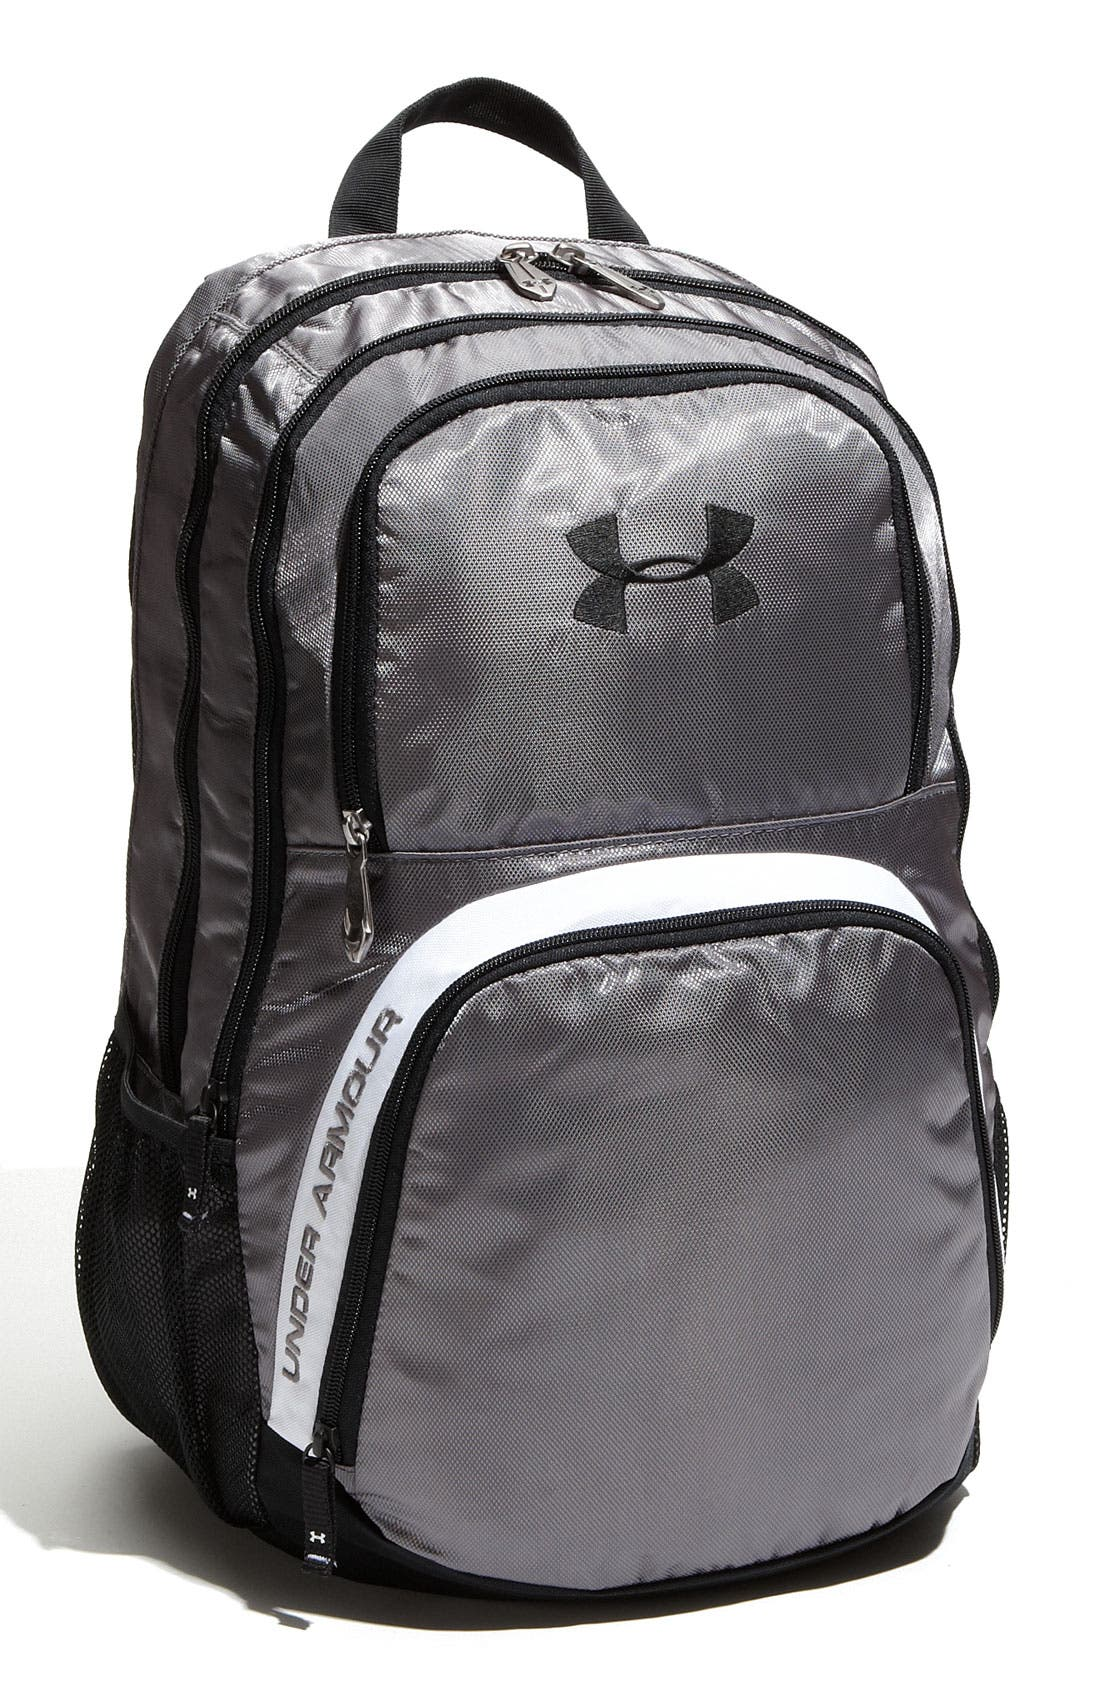 Alternate Image 1 Selected - Under Armour 'Victory' Backpack